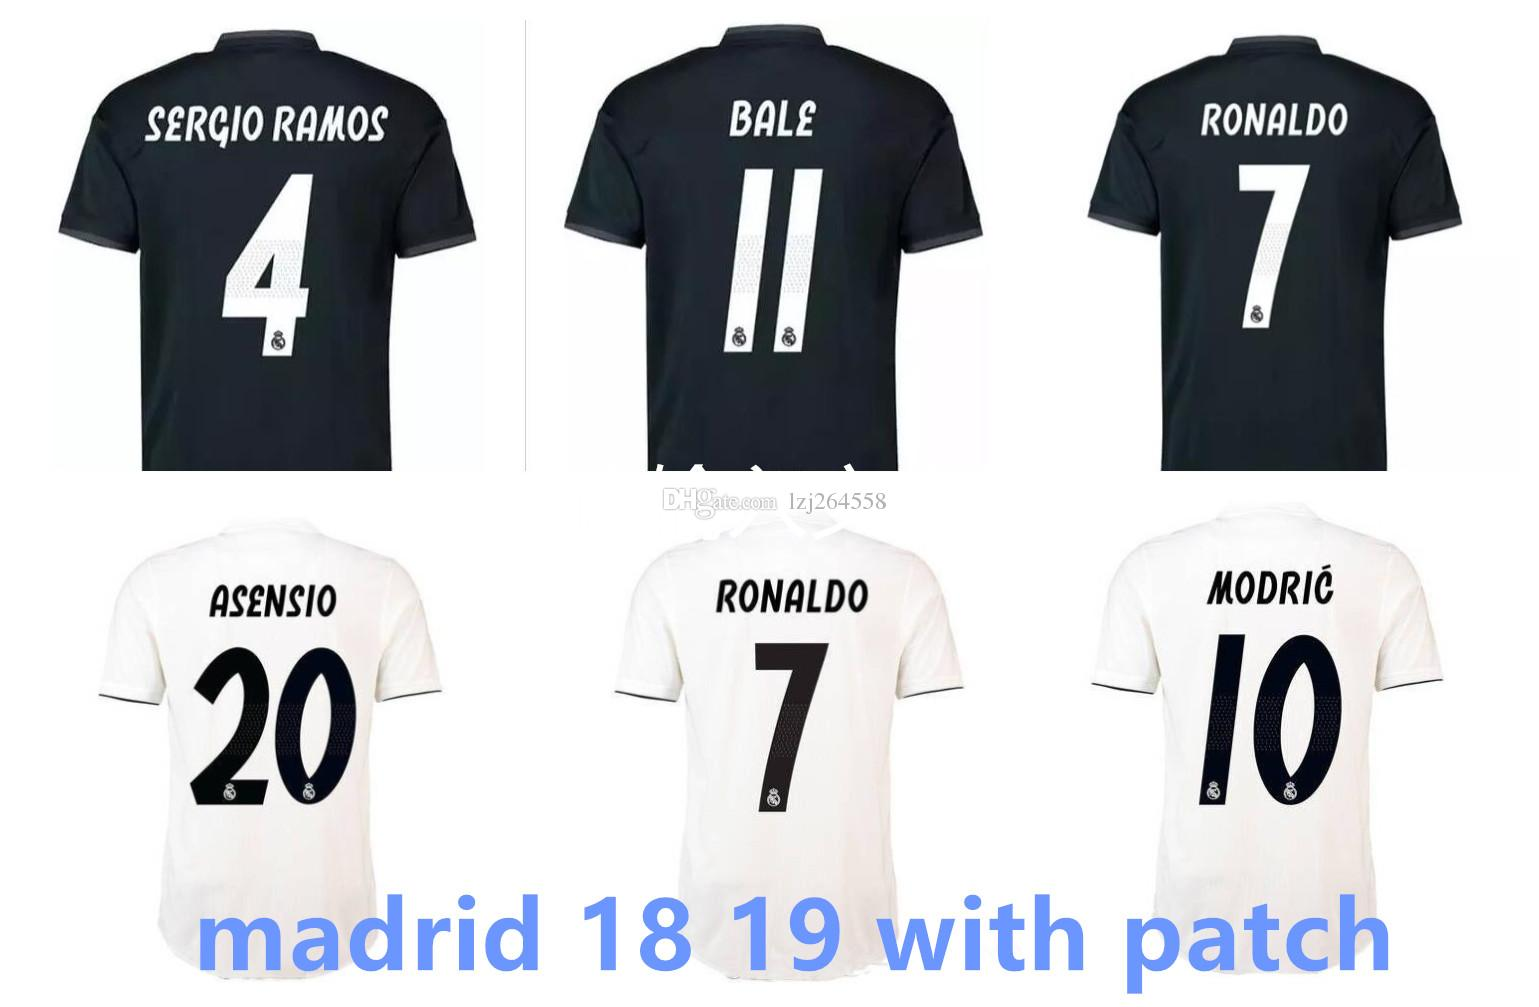 huge selection of afcf8 bb428 New Camisa Real Madrid 2019 Soccer Jerseys, Chandal Cristiano Ronaldo  Jersey Football Shirt 18 19 CR7 ASENSIO Modric Kroos Ramos Bale FUTBAL